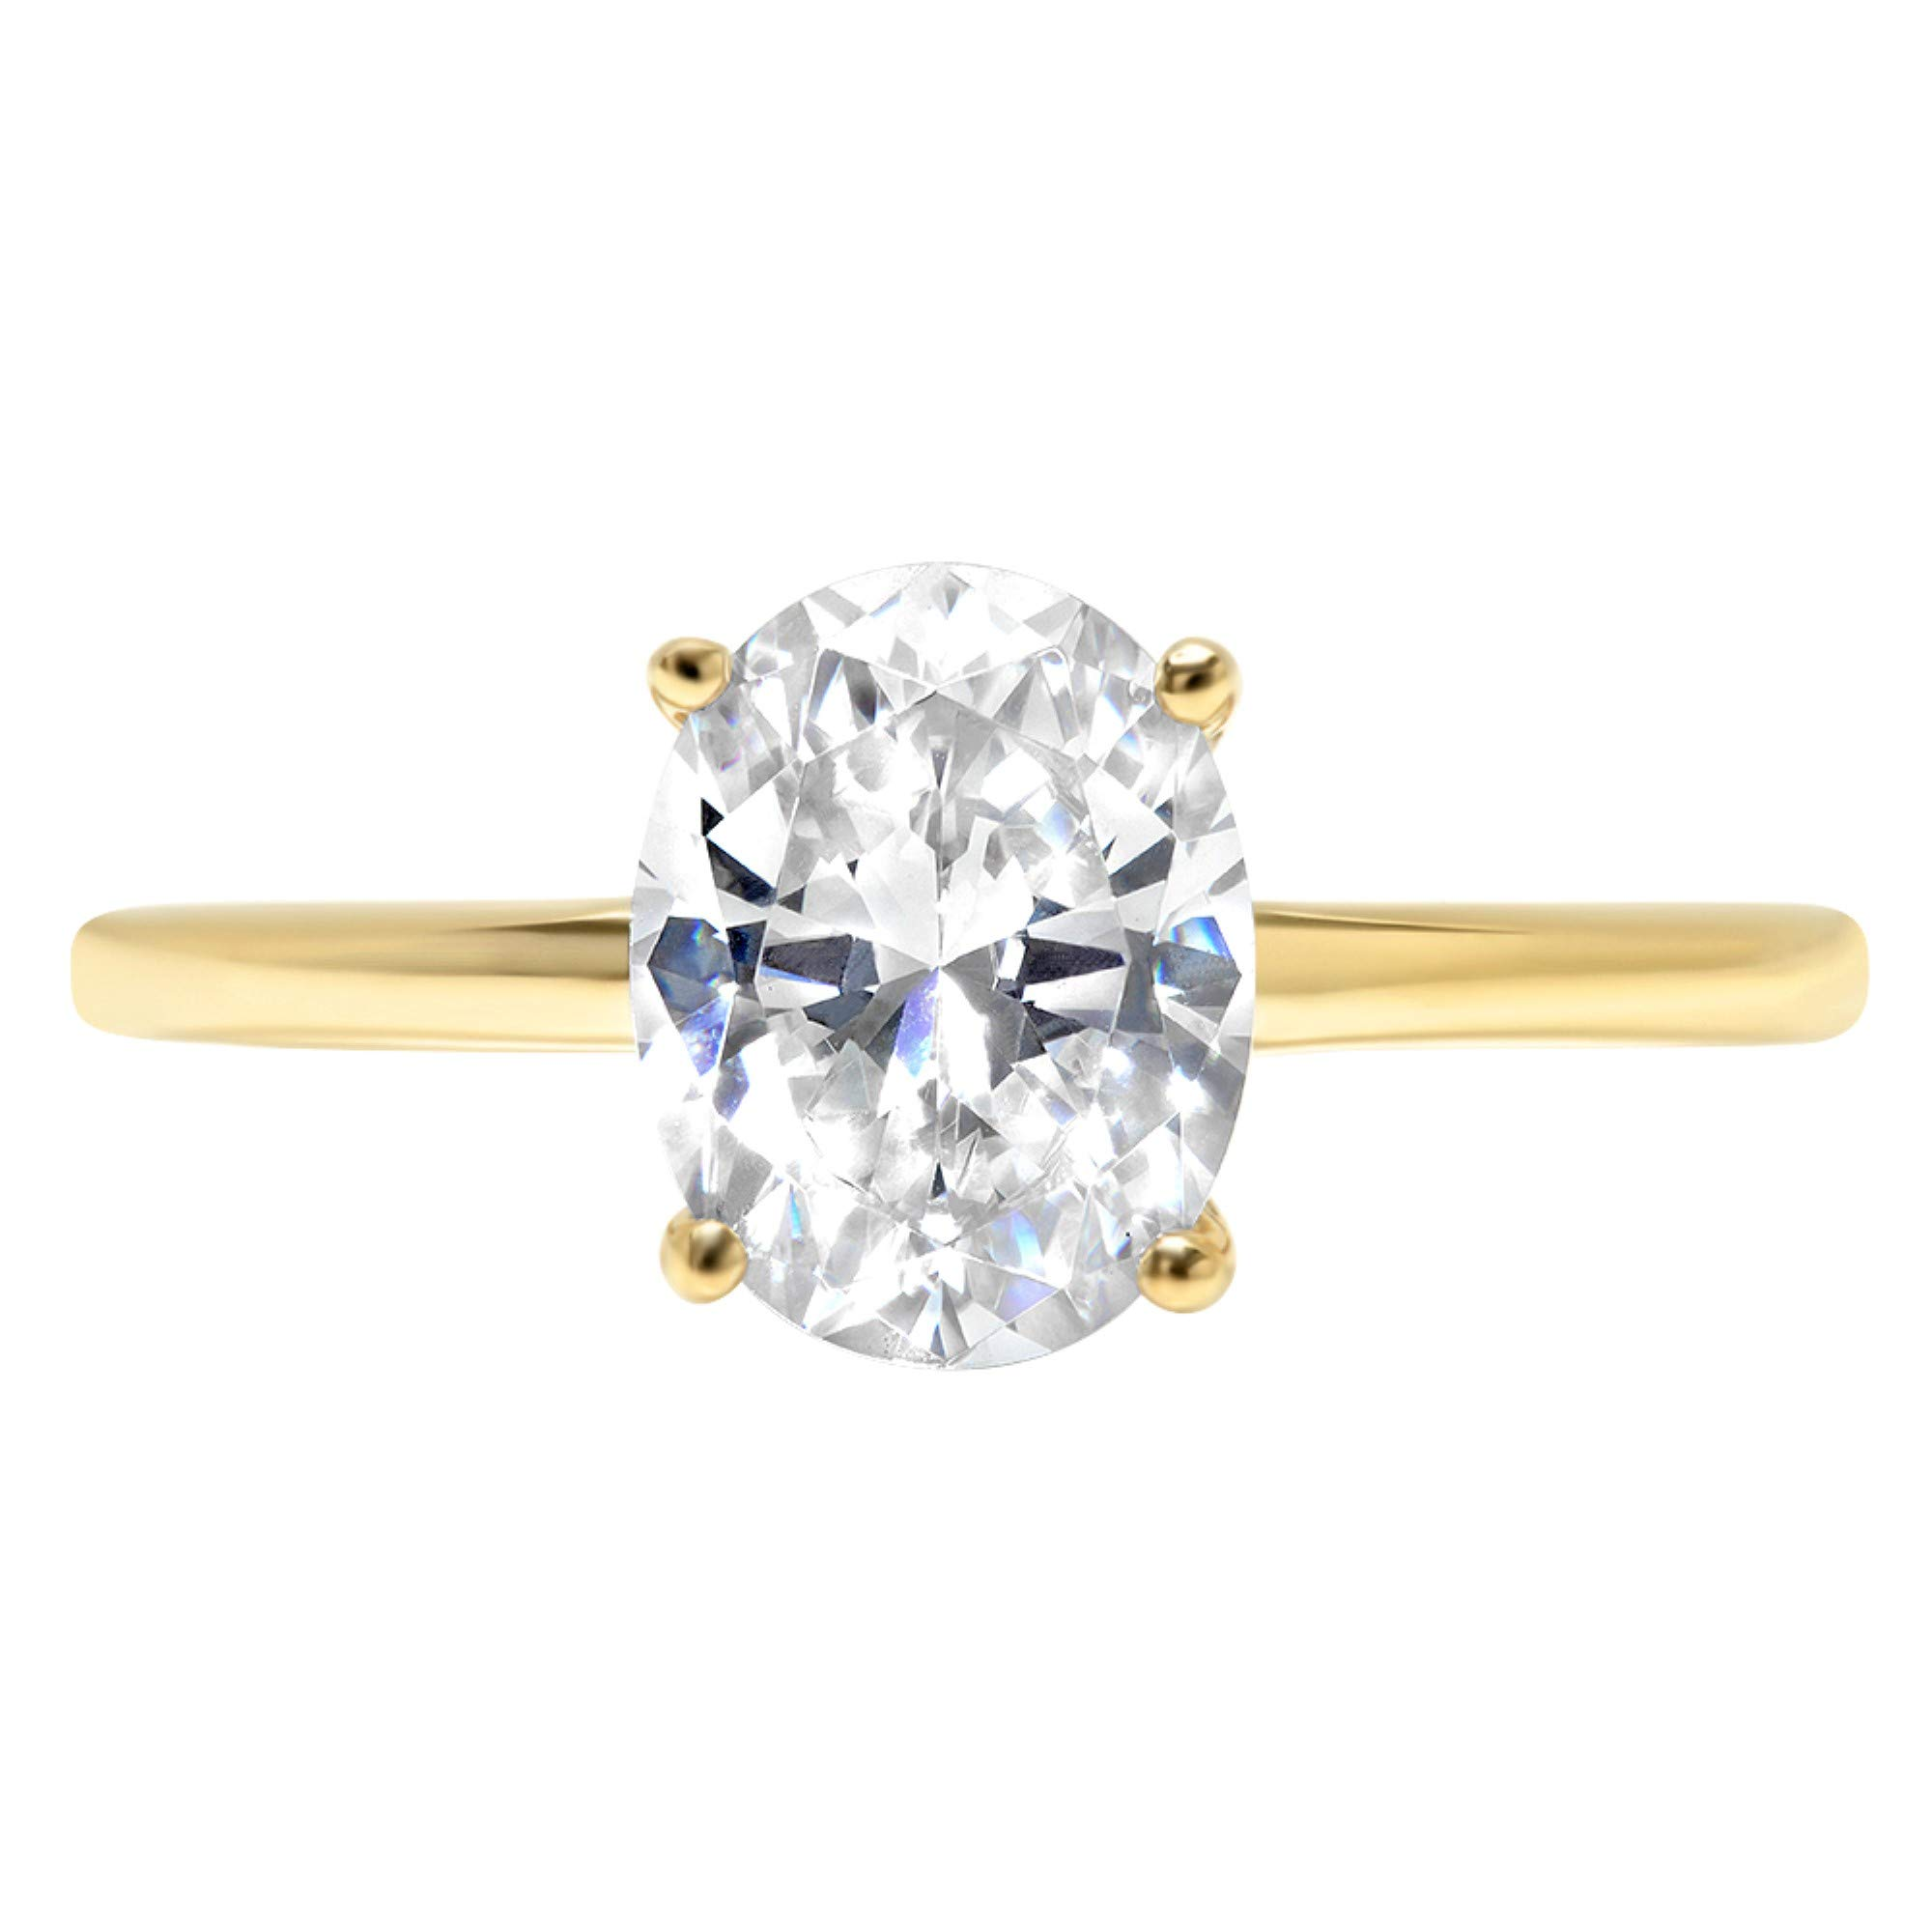 1.9ct Brilliant Oval Cut Solitaire Highest Quality Lab Created White Sapphire Ideal VVS1 D 4-Prong Engagement Wedding Bridal Promise Anniversary Ring Solid Real 14k Yellow Gold for Women